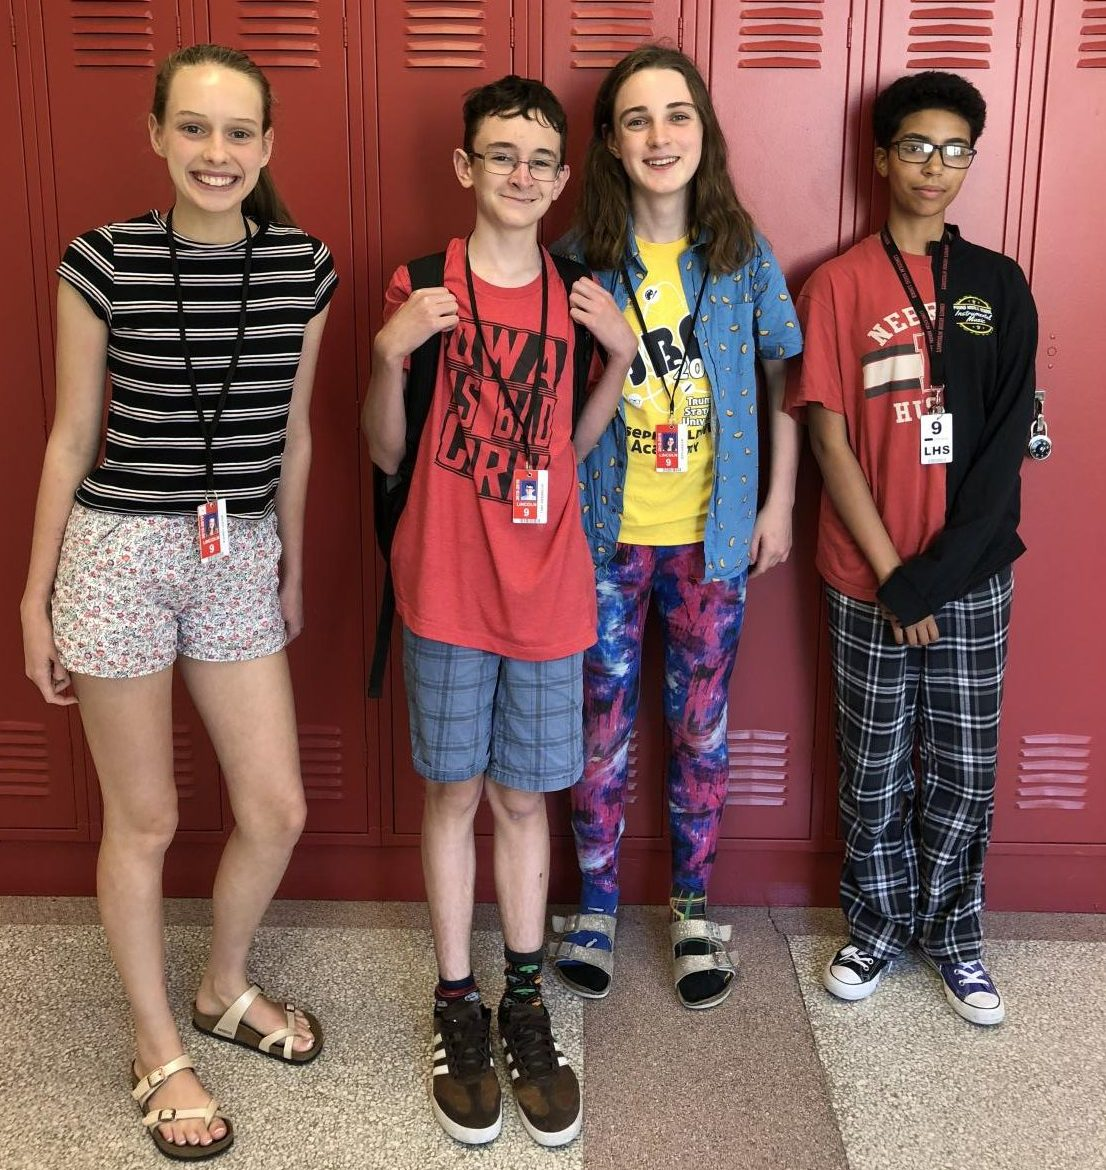 Students in Deborah McGinn's English class get mismatched for Monday of Spirit Week. Left to right: Audrey Lester, Toby Giesbrecht, Zeph Siebler, Dustin Stevison. Photo courtesy of Deborah McGinn